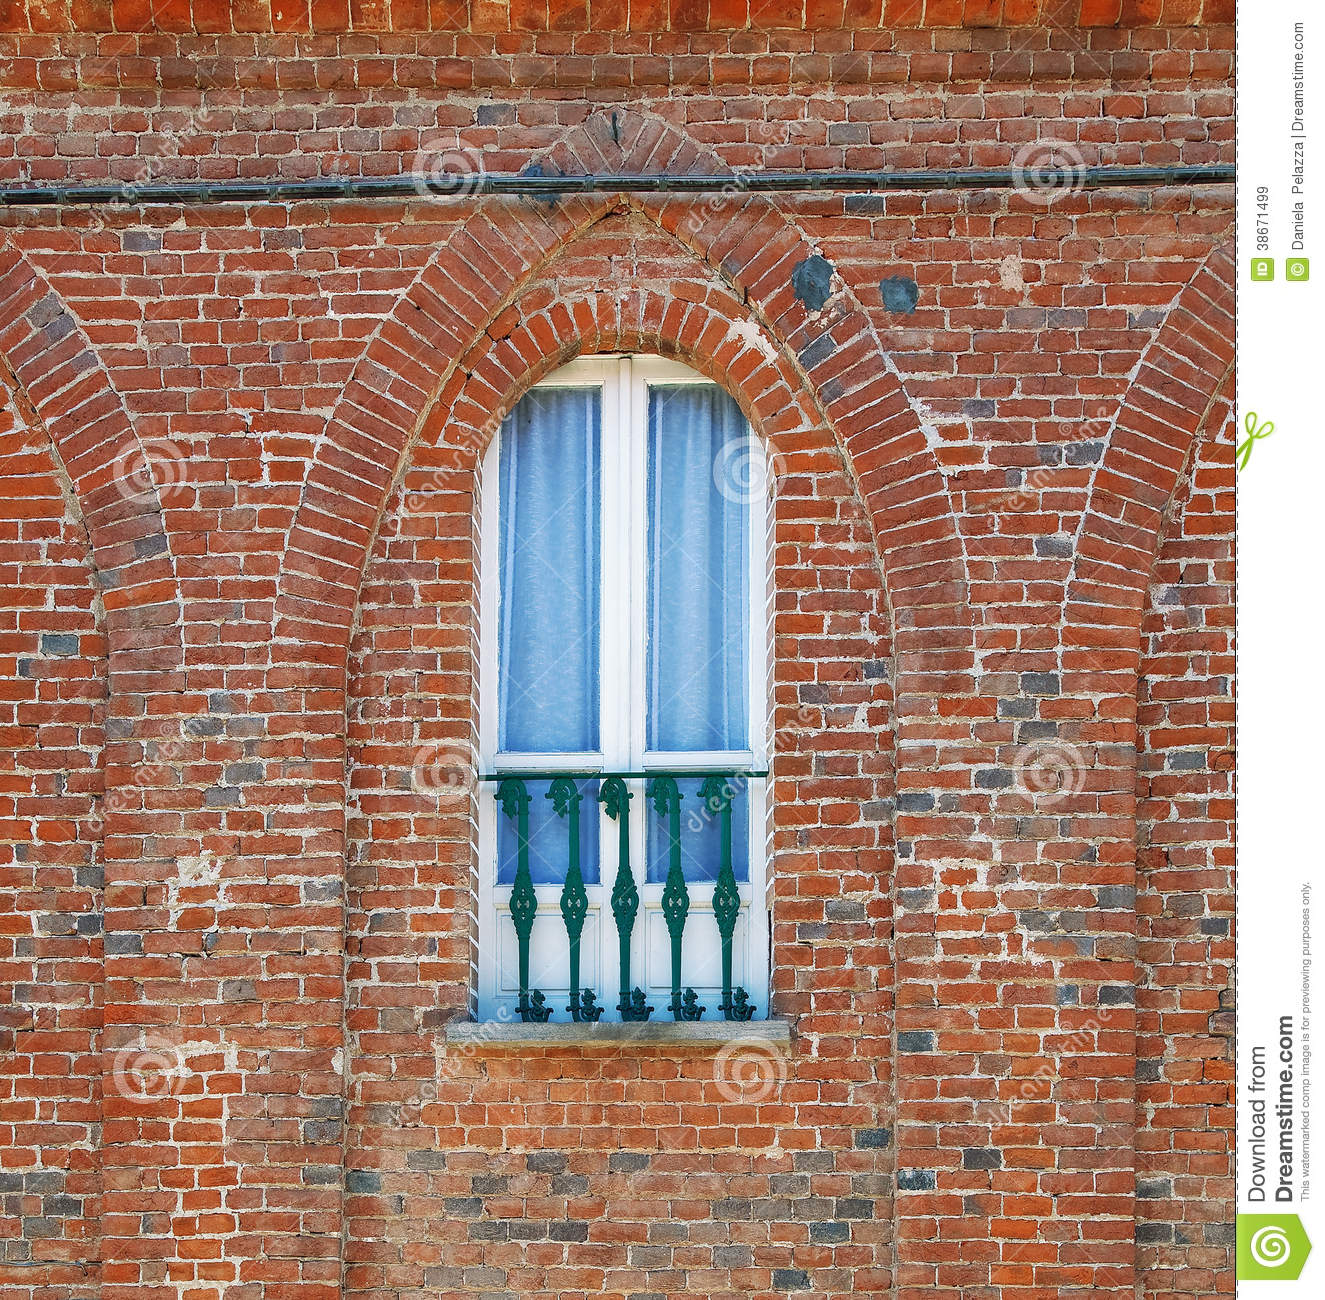 Balcony in italian old house royalty free stock images for Balcony in italian